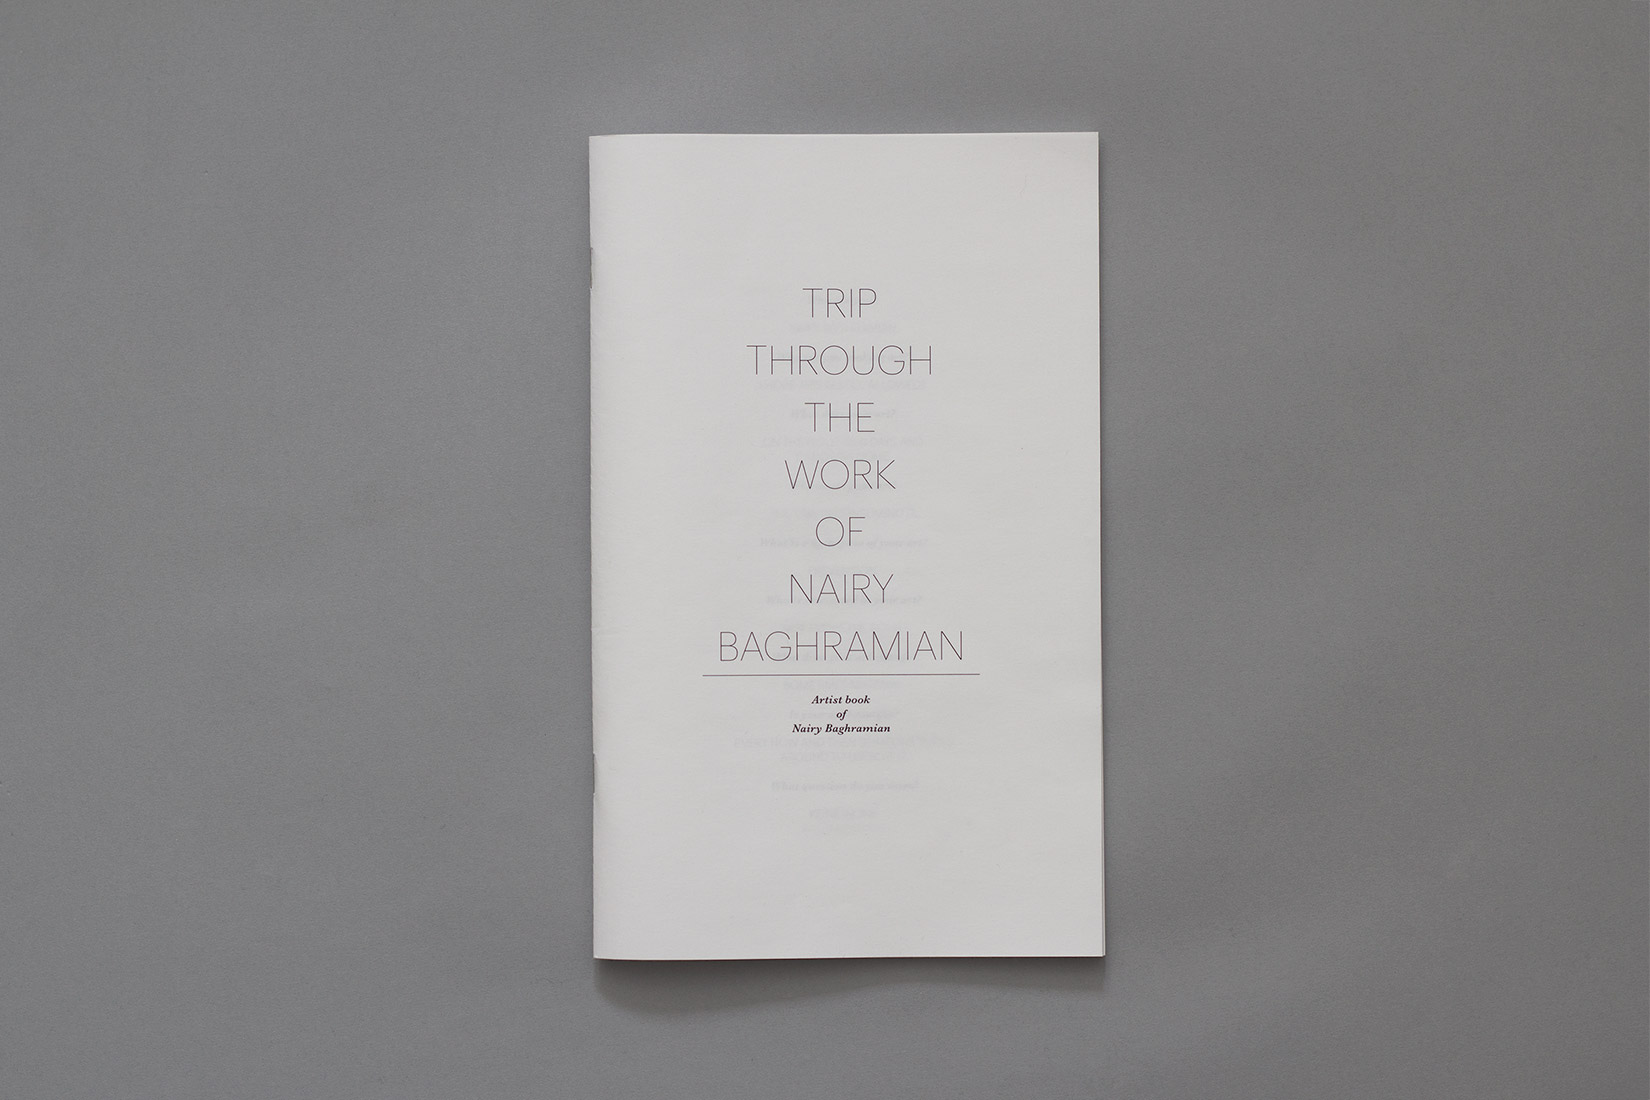 Livre d'artiste, Nairy Baghramian, typographie, Graphik, Baskerville, Trip through the work of Nairy Baghramian